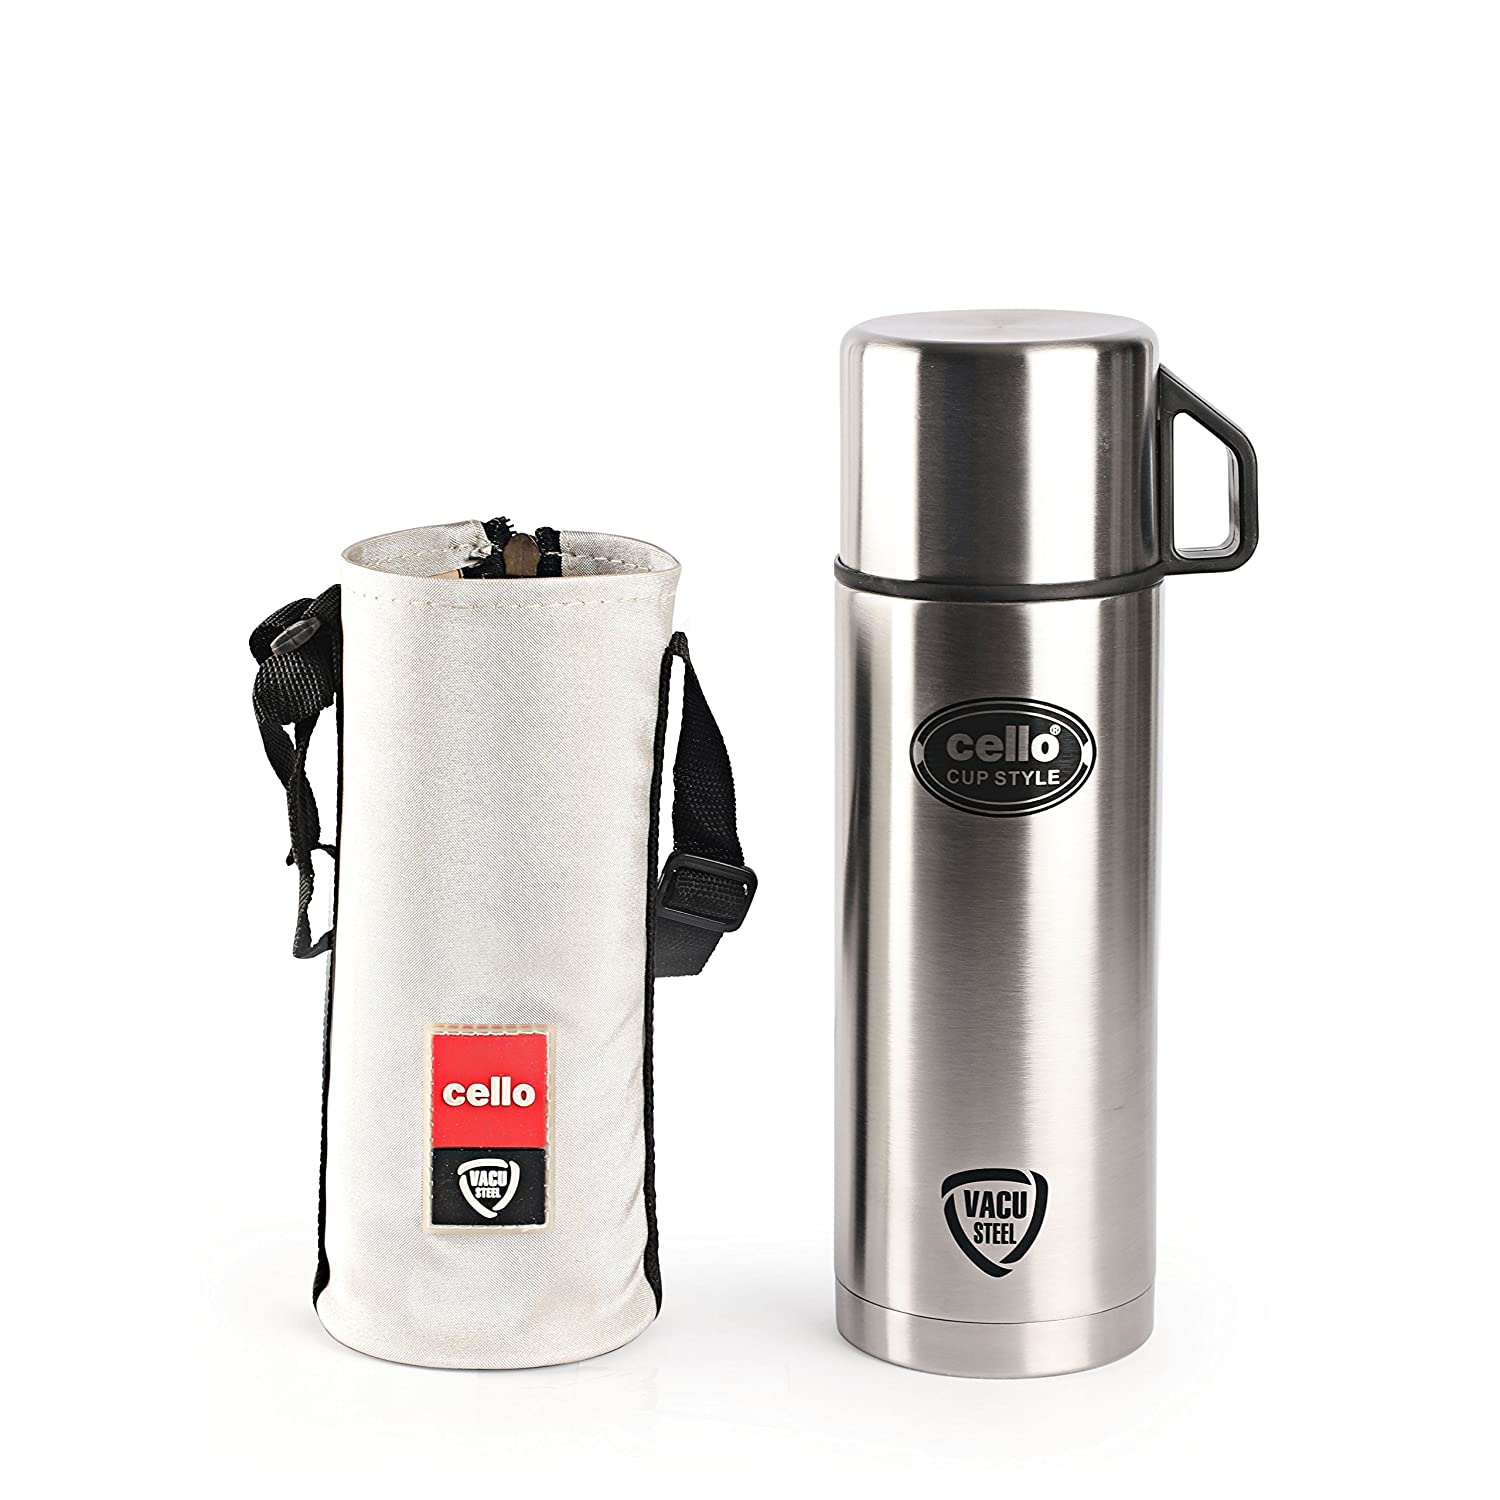 Cello Cup Style Stainless Steel Flask